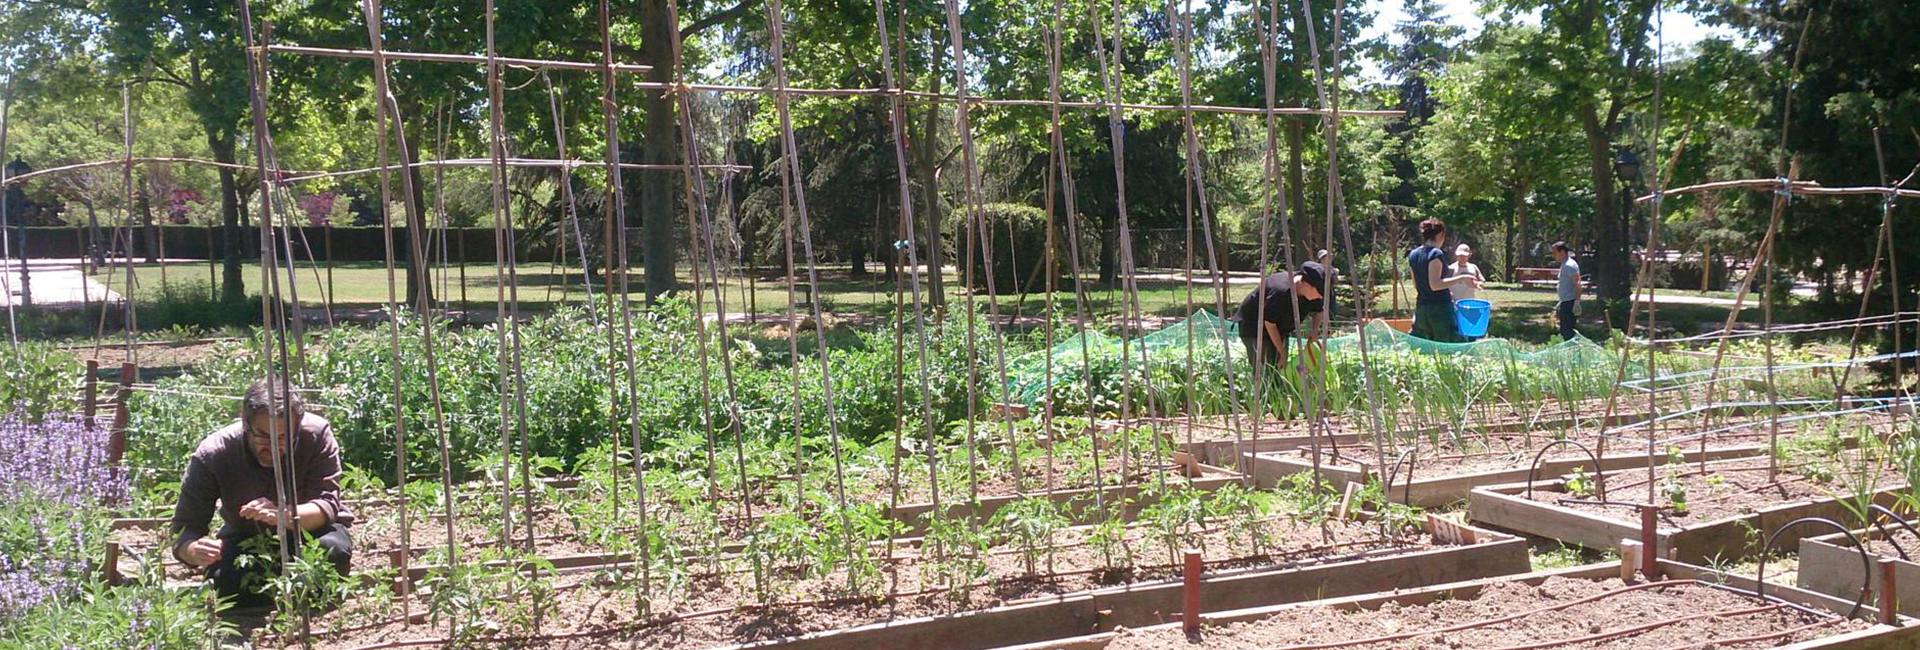 Working in Bombilla community garden